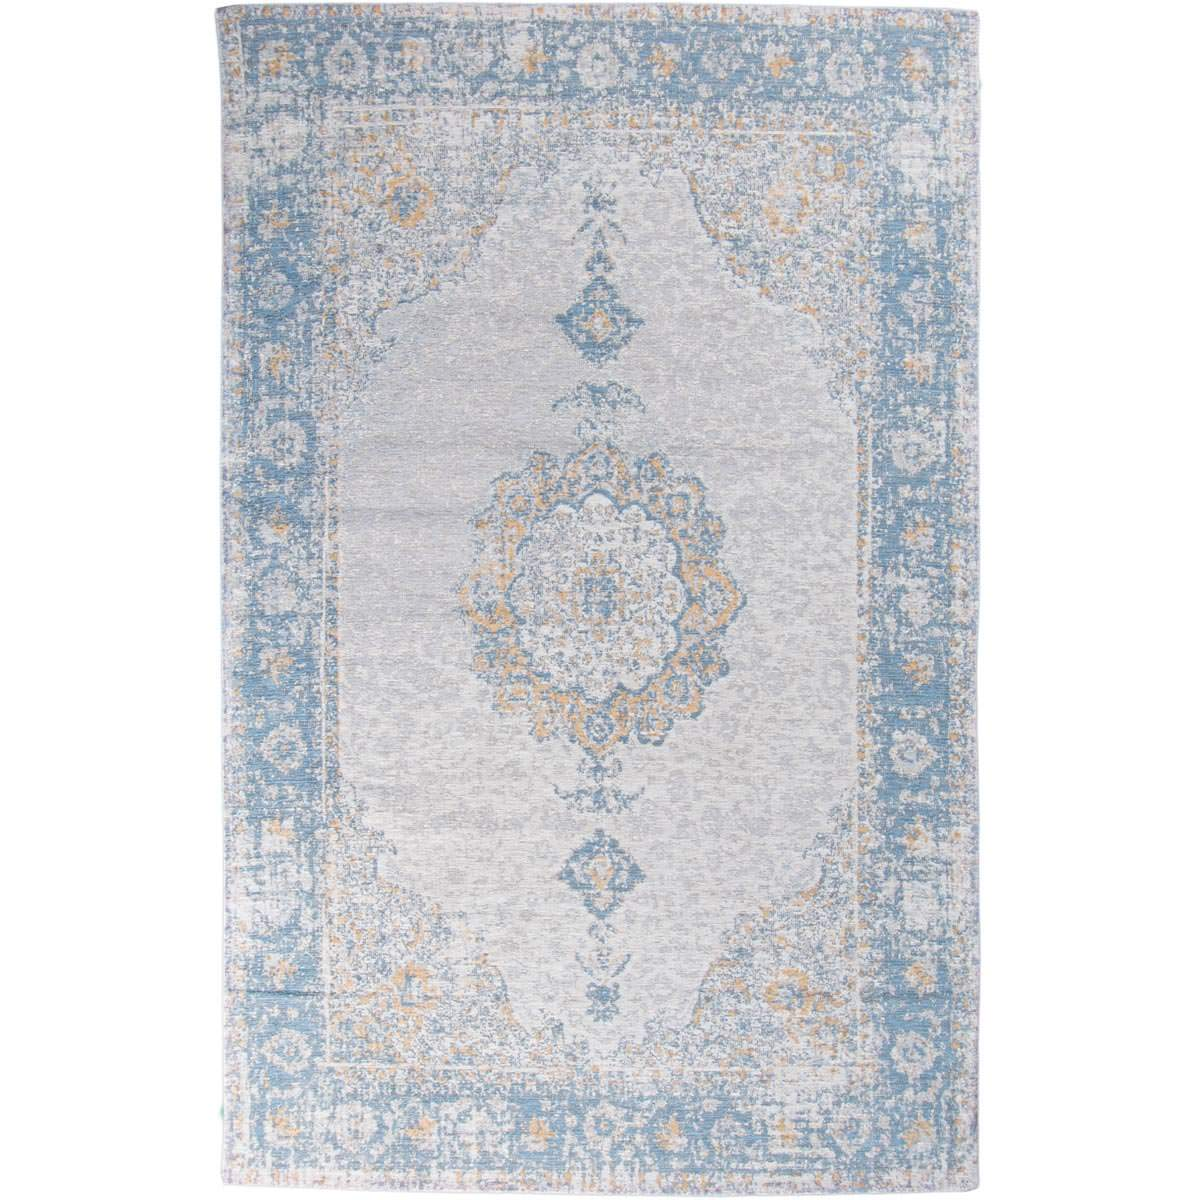 Marseille Rug 34 Blue/Beige/Yellow 1